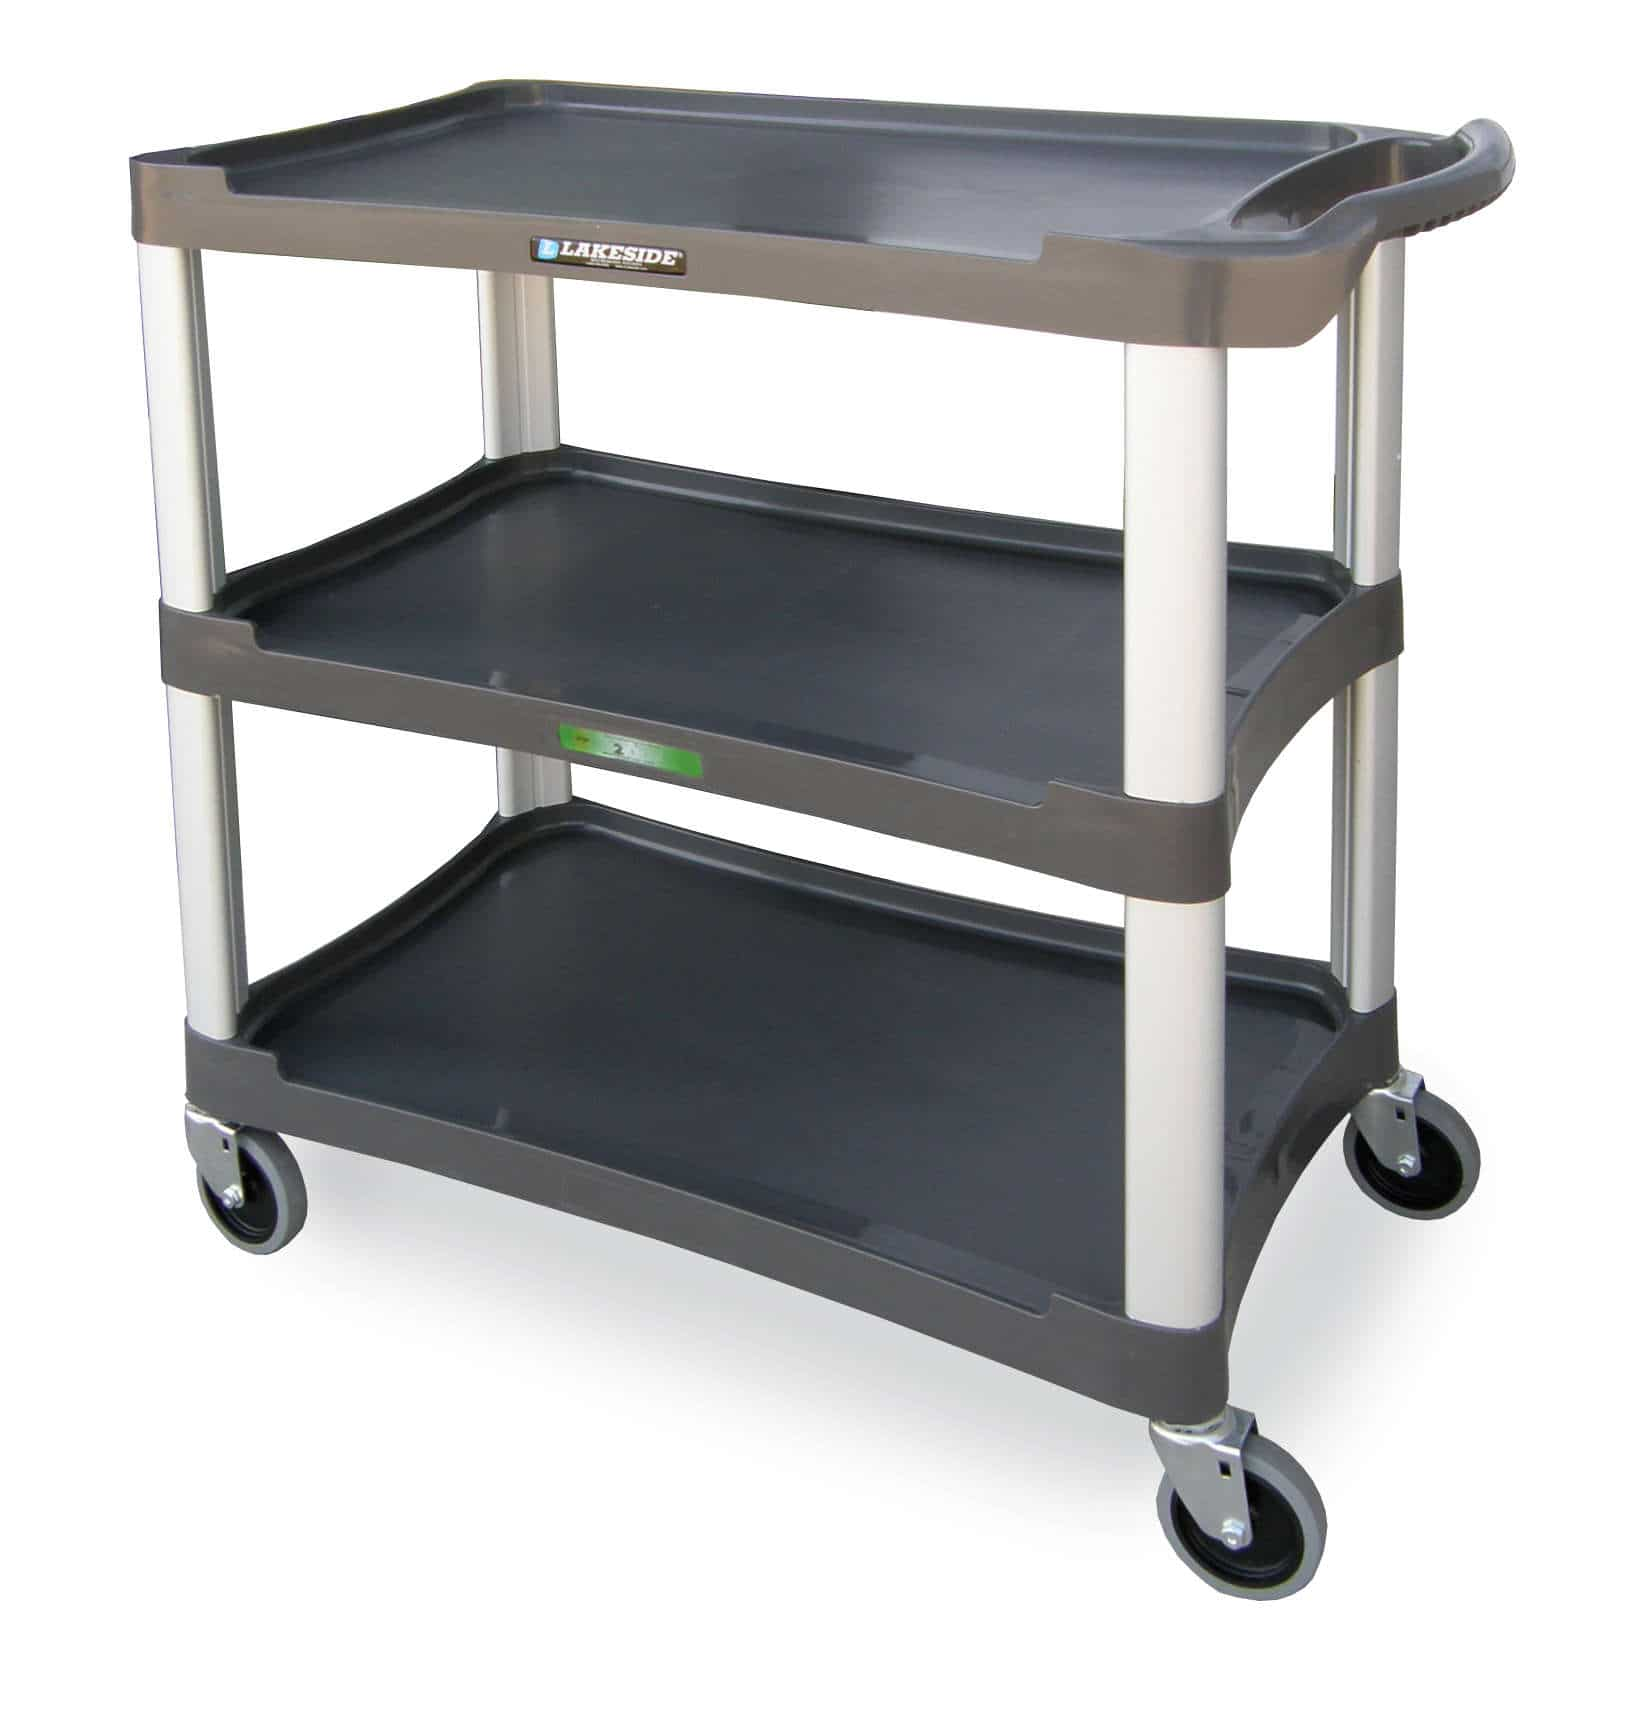 Factory Utility Cart: Lakeside Manufacturing 2503 Utility Cart